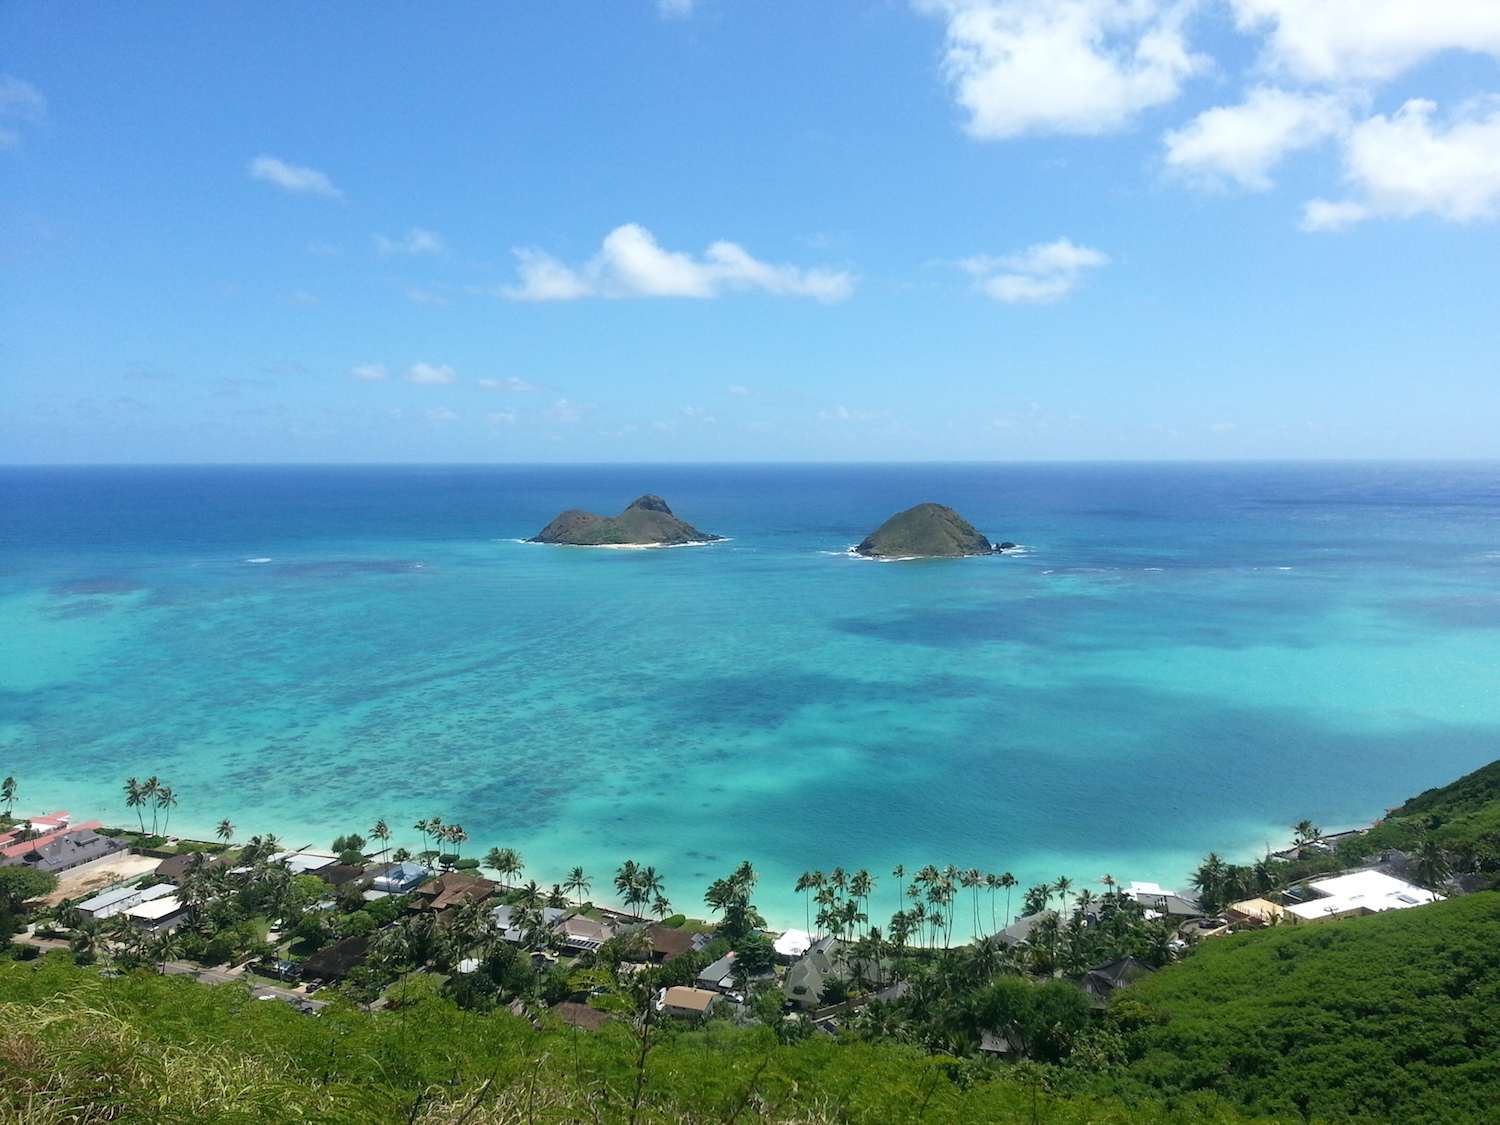 Lanikai Pillboxes, Kailua, Oahu, Hawaii